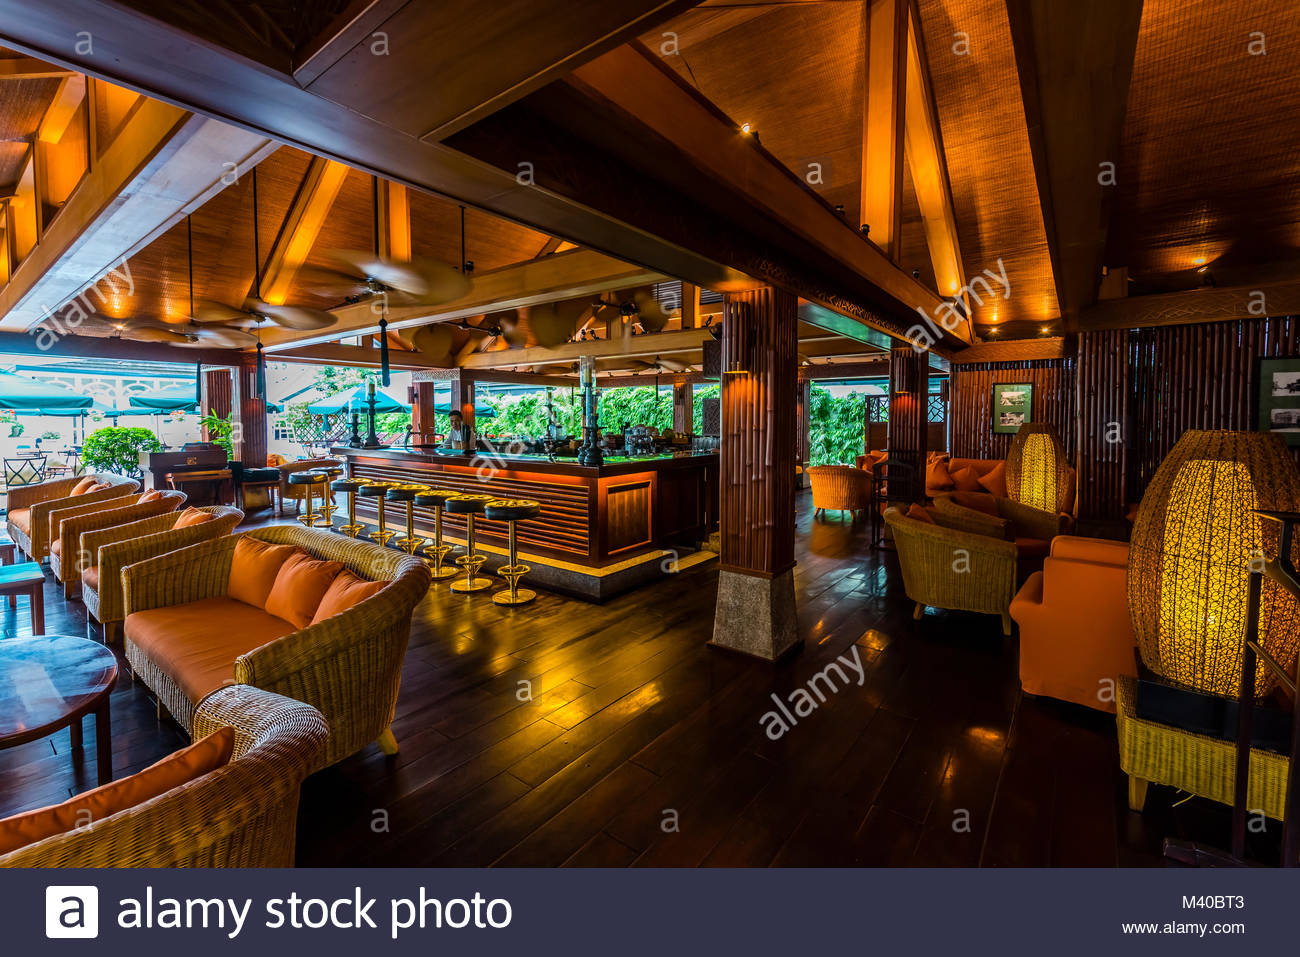 The Bamboo Bar at Sofitel Legend Metropole Hanoi is a 5 star historic luxury hotel opened in 1901 in the French - Stock Image